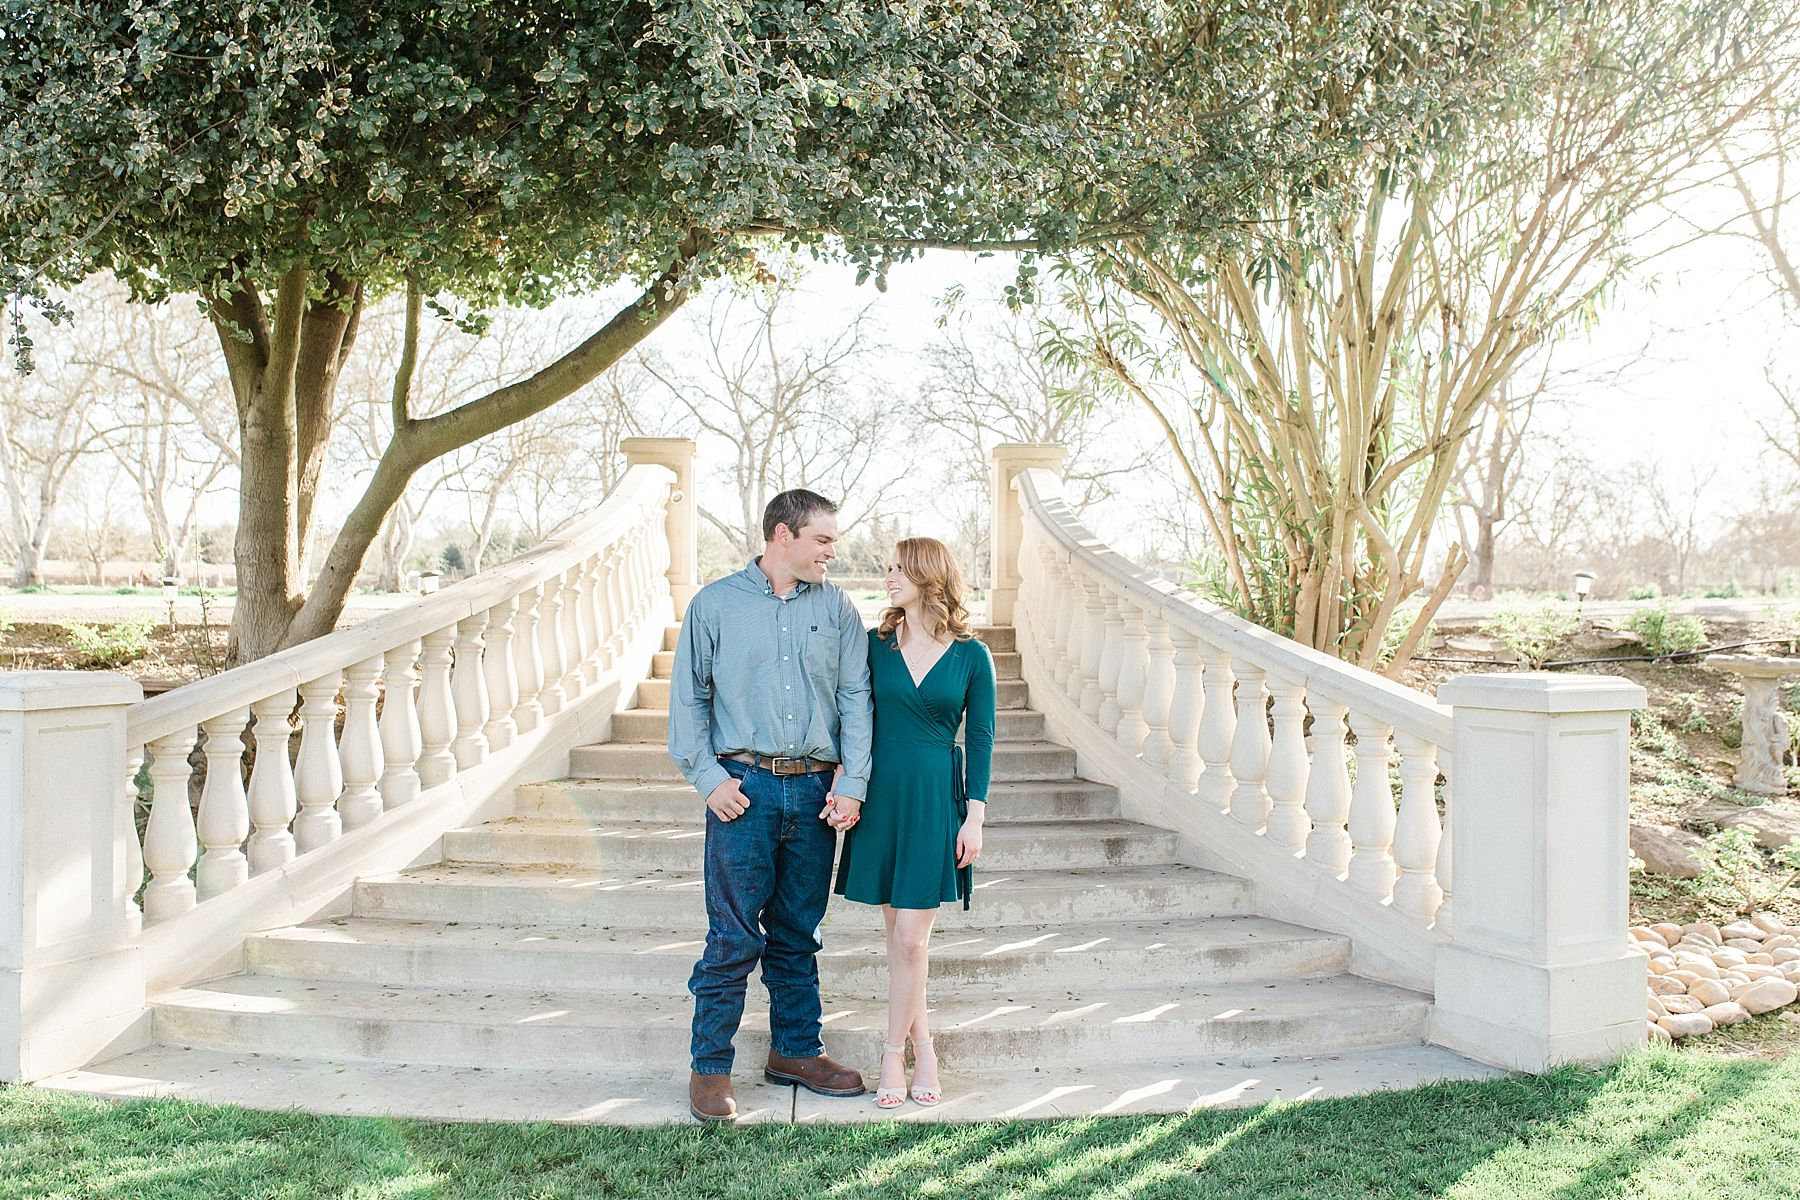 Viaggio Winery Engagement Session - Liz and TJ - Lodi Winery Wedding Photographer_0023.jpg